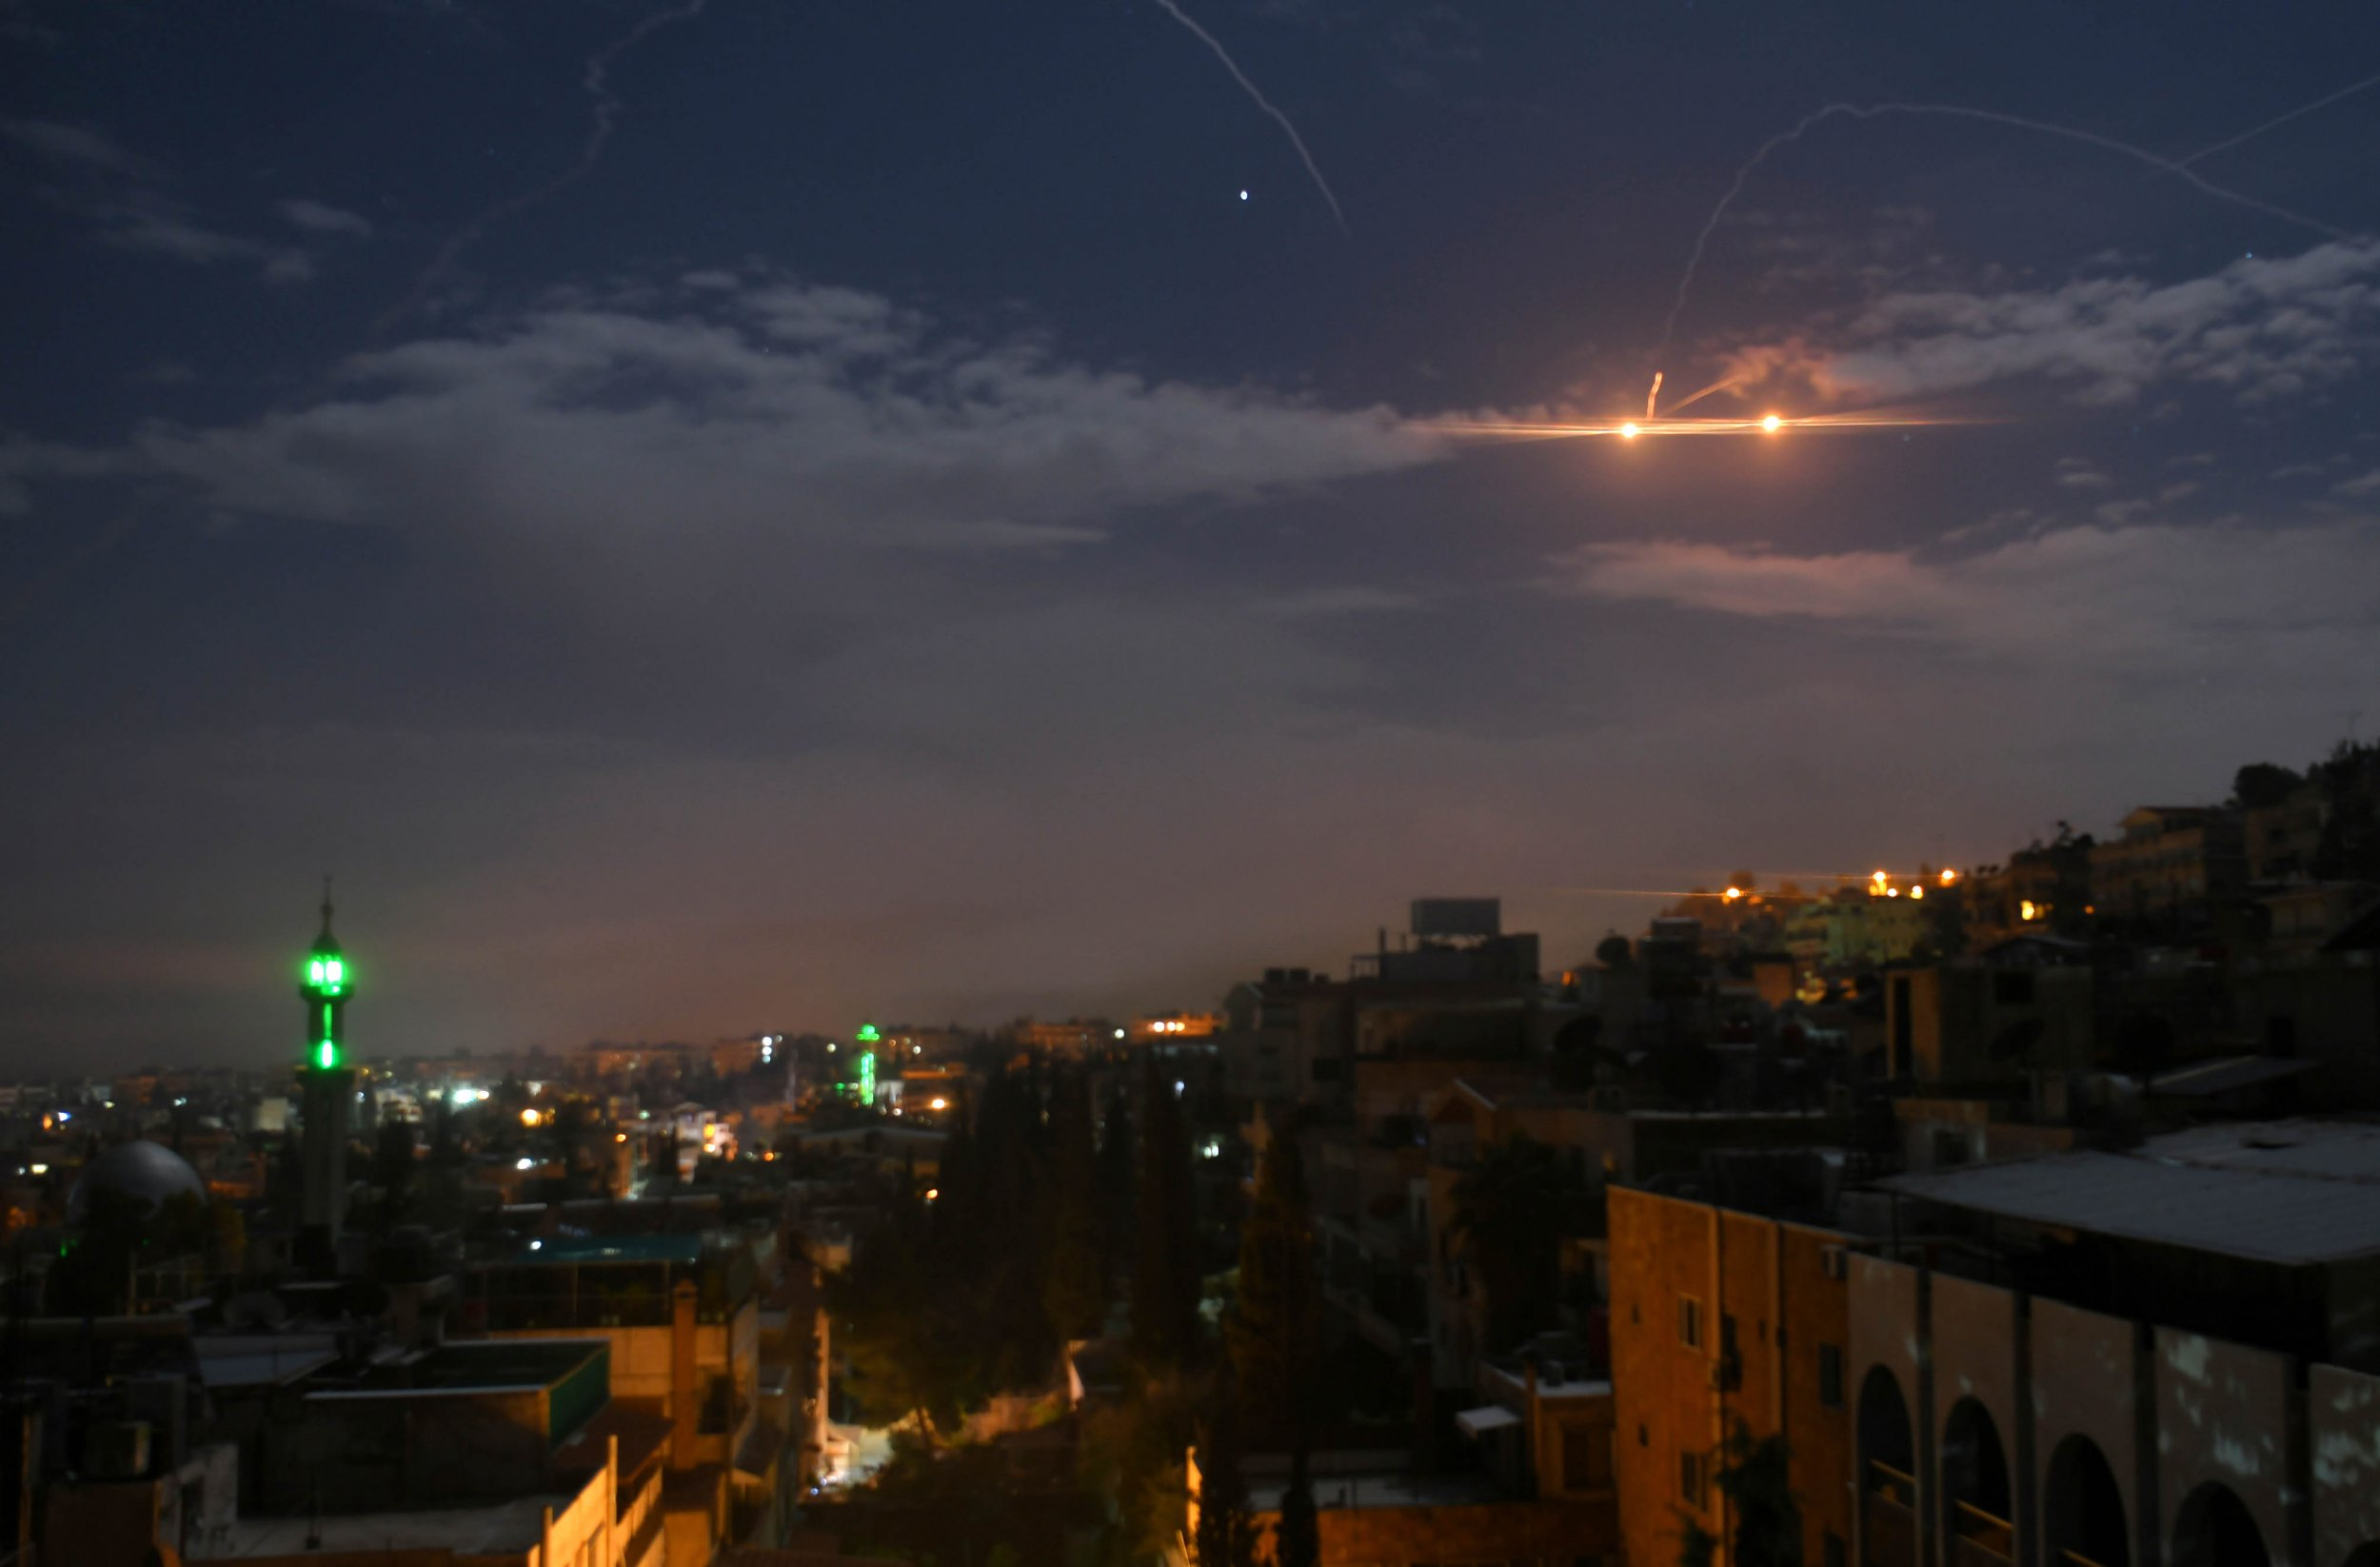 Syria Reports New Israeli Strikes Just As Russia Calls Attacks 'Unlawful' and 'Illegitimate'